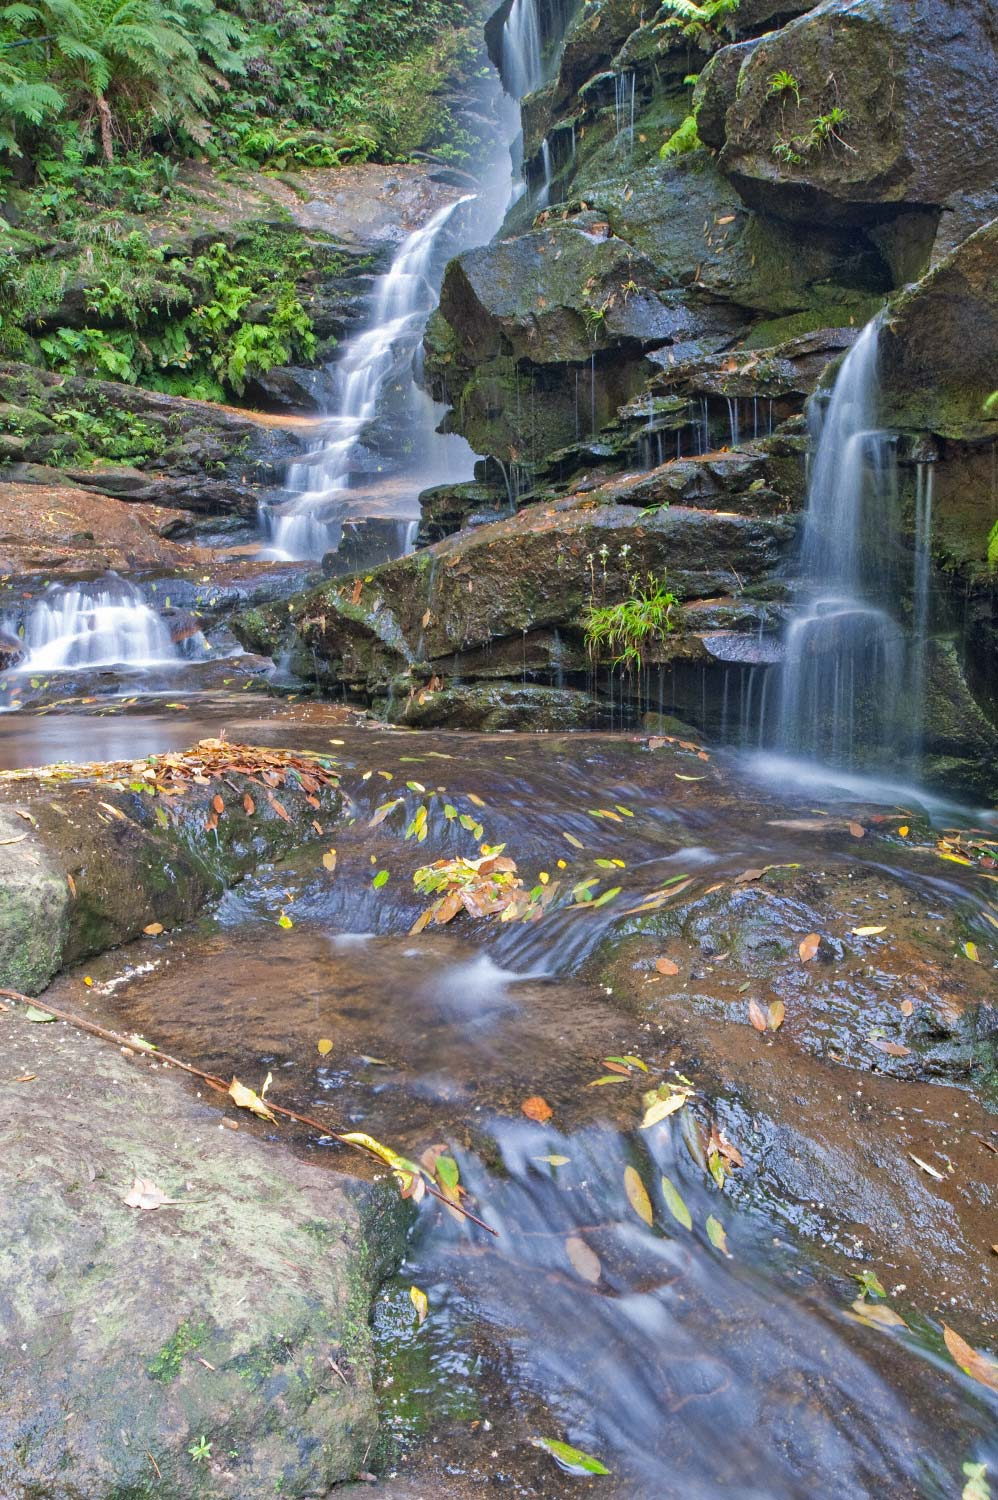 Warren-Hinder-LR-Valley-Waters-Sylvia-leaf-flow.jpg